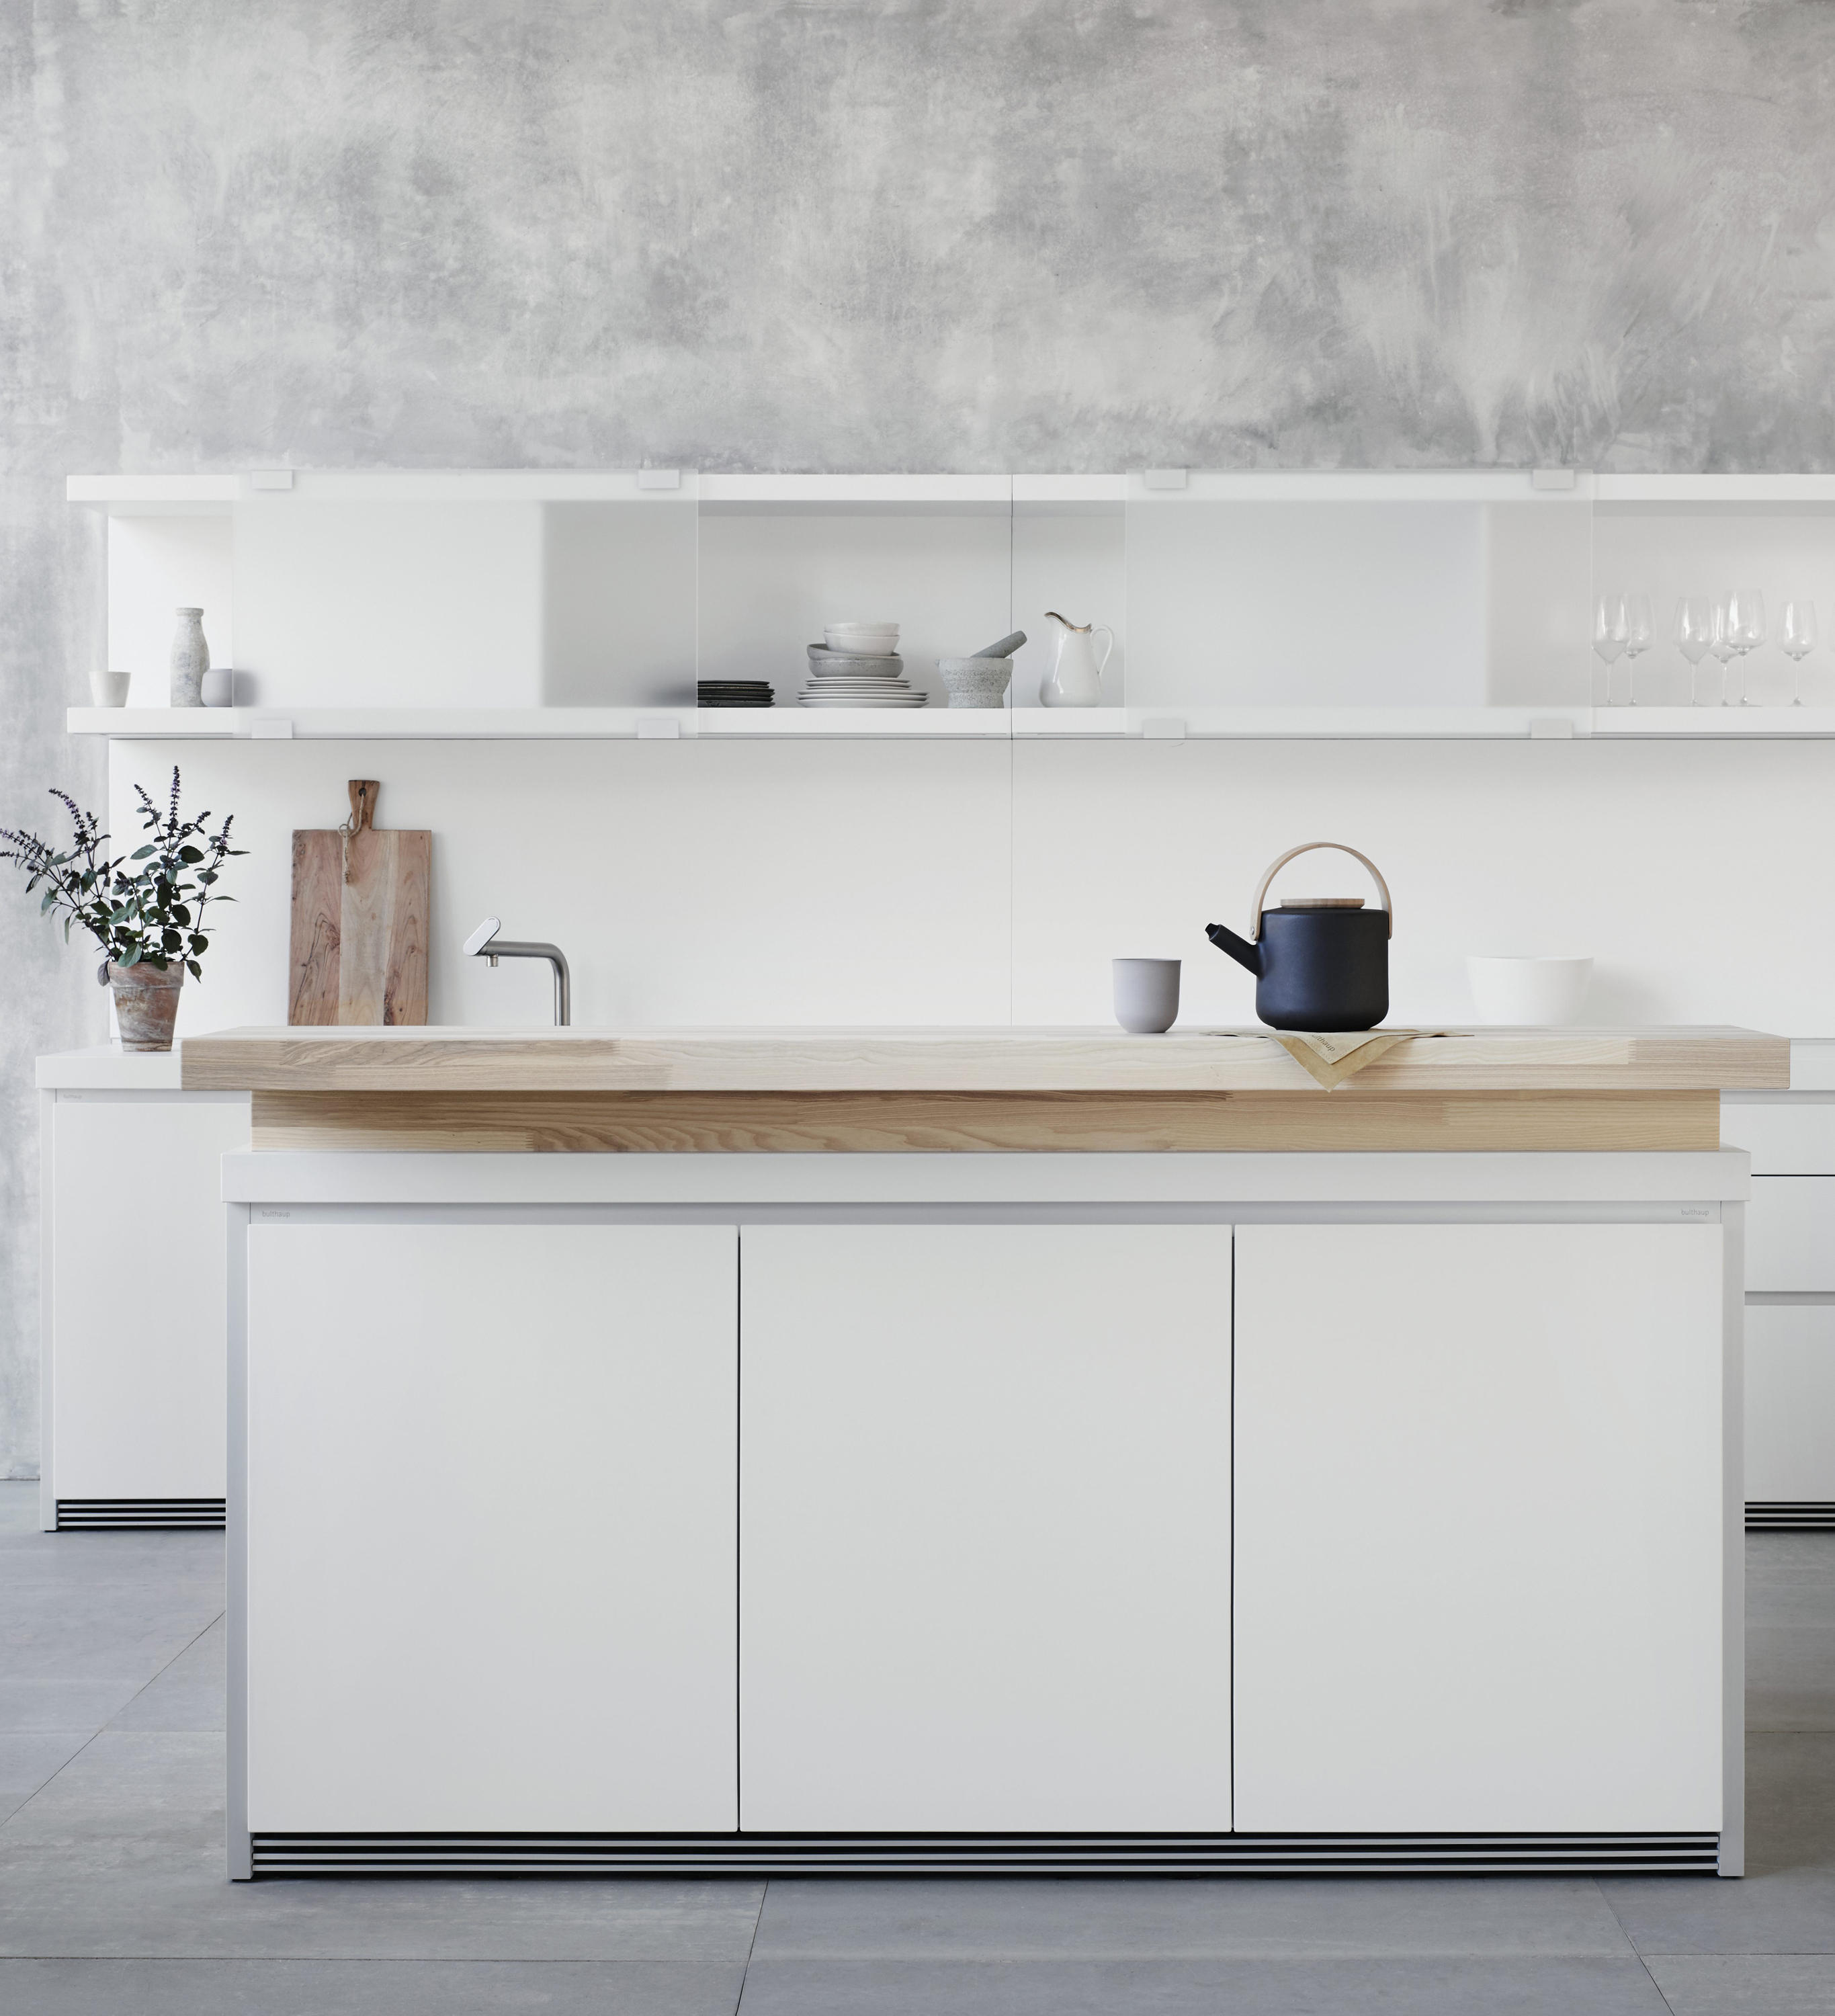 Bulthaup Küchen Schweiz B1 Fitted Kitchens From Bulthaup Architonic